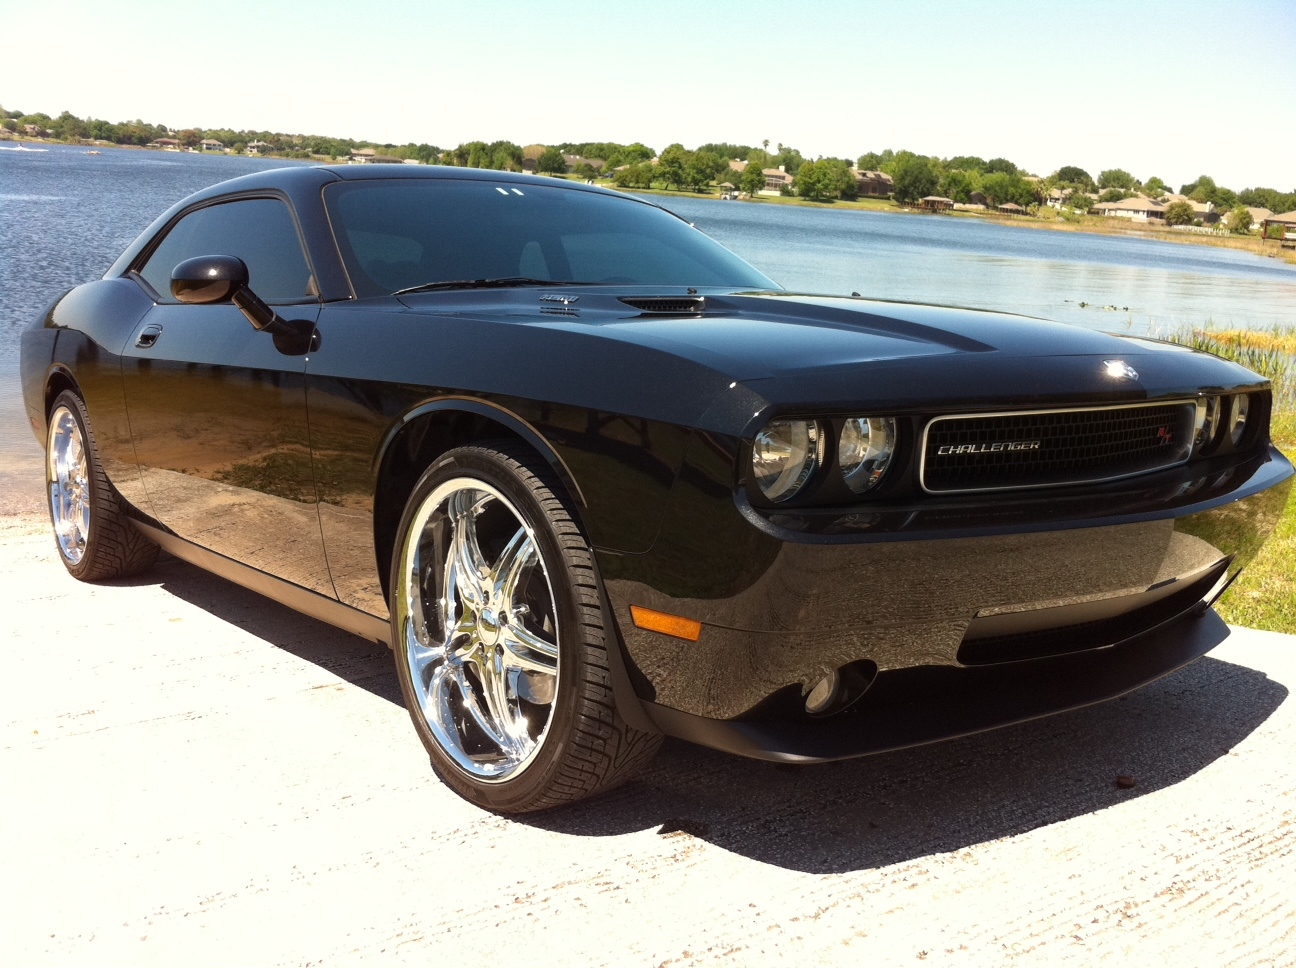 2010 Dodge Challenger R/T - Pictures - Picture of 2010 Dodge Challeng ...